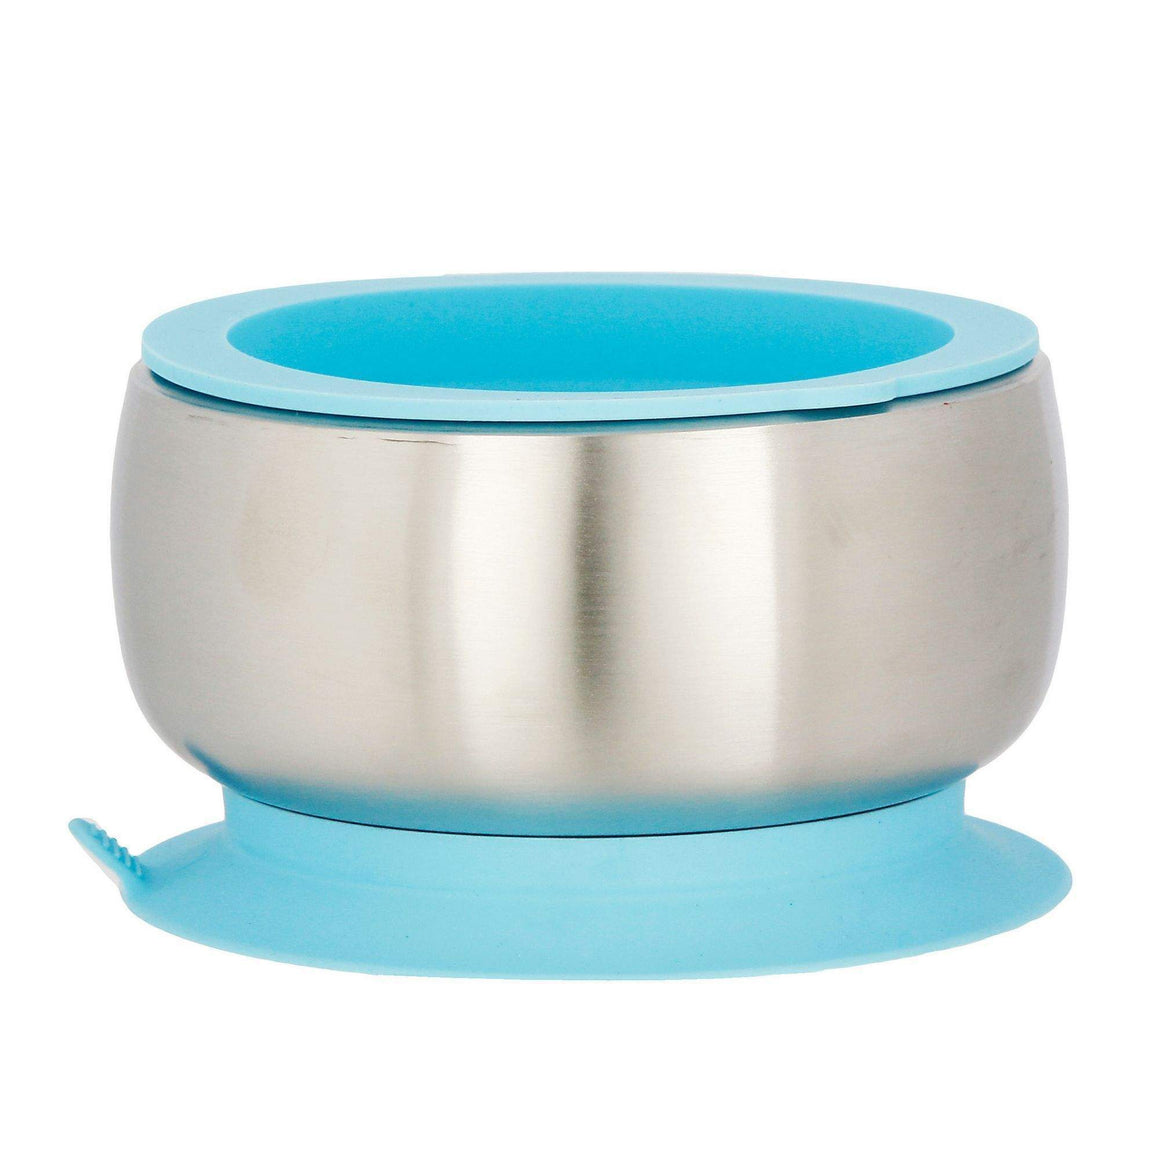 Avanchy Stainless Steel Suction Baby Bowl + Air Tight Lid - Blue (不锈鋼碗+蓋-藍色)